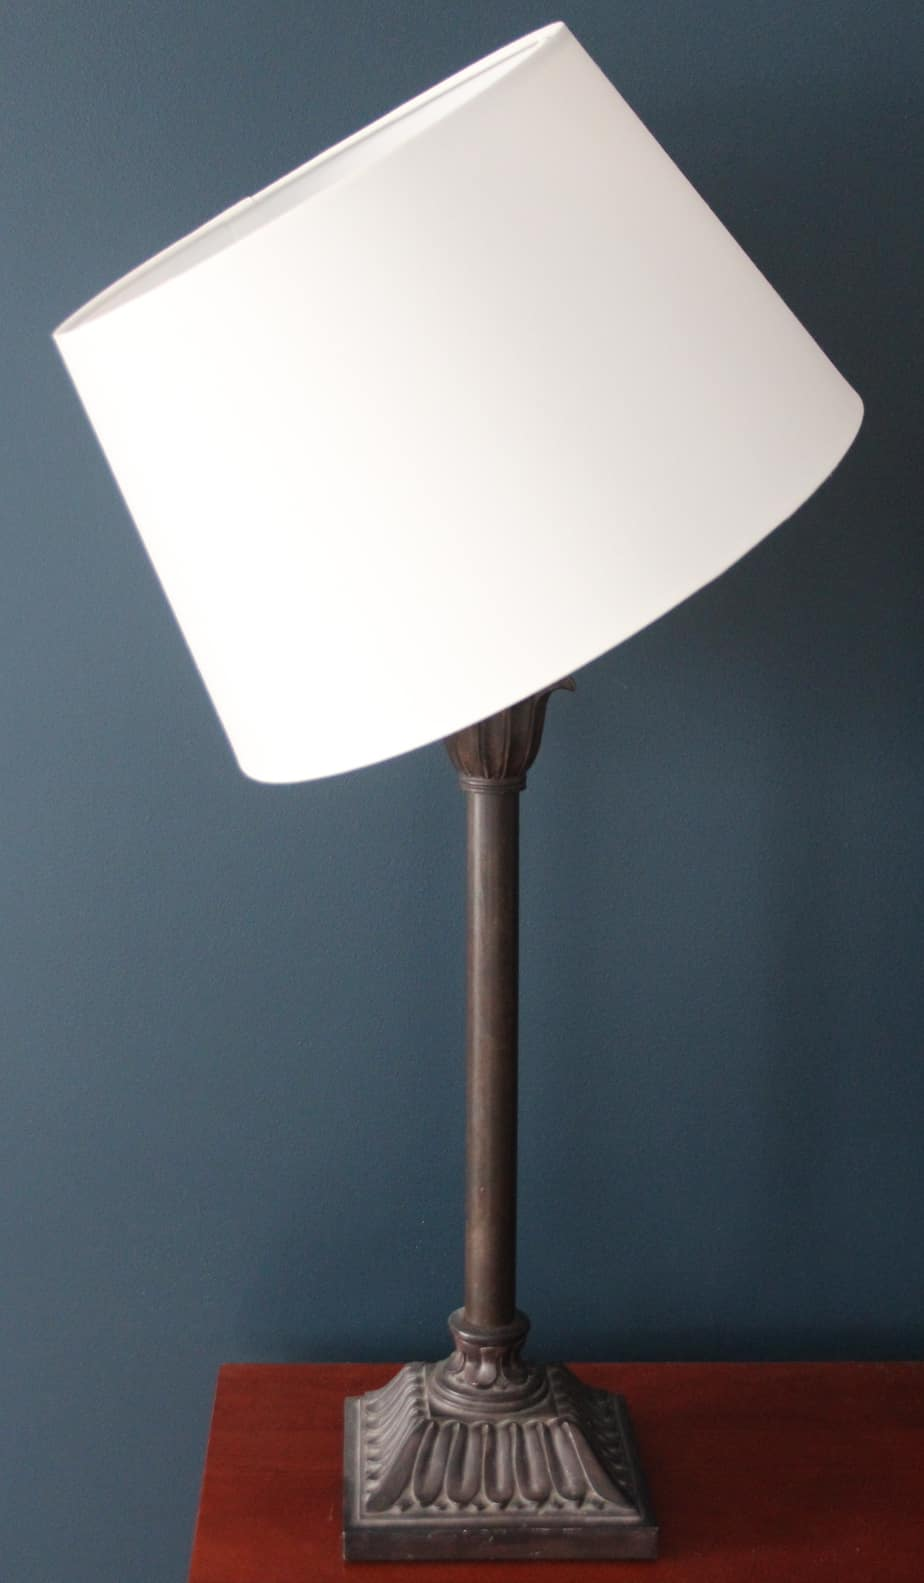 An Ikea lamp shade hacked to fit on a non-Ikea lamp base.